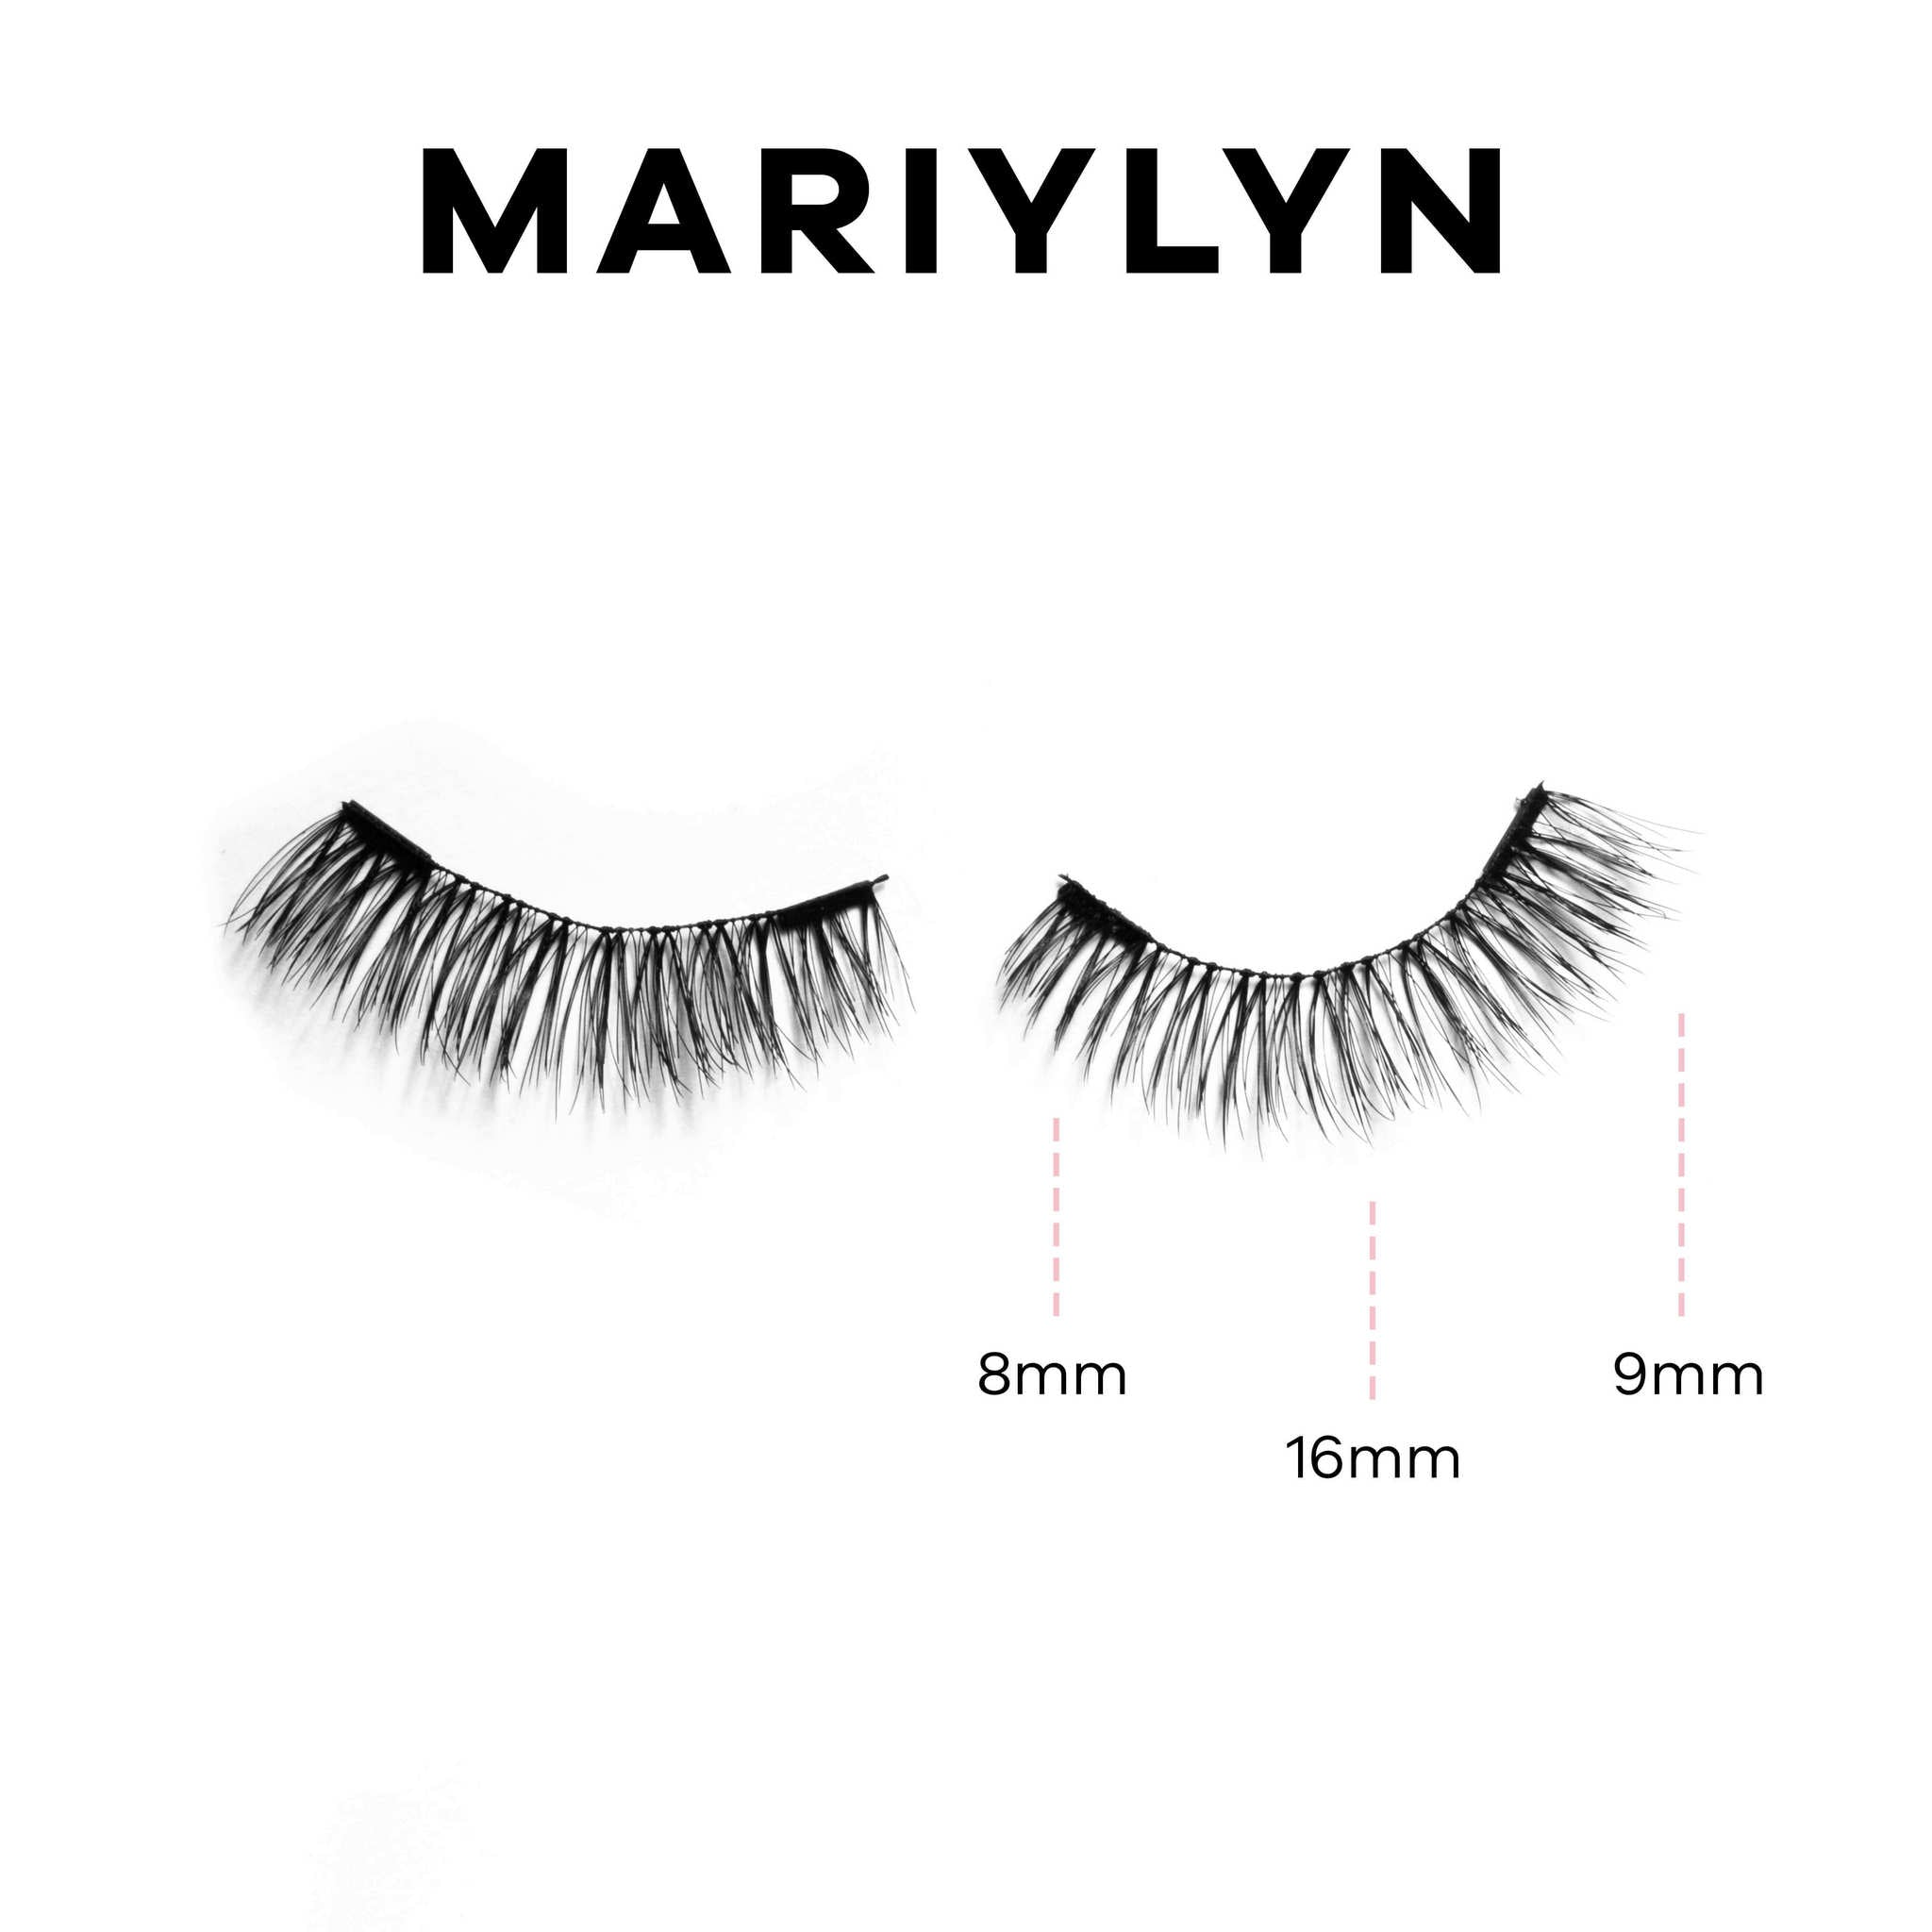 files/EL_lash_guide_marilyn.jpg